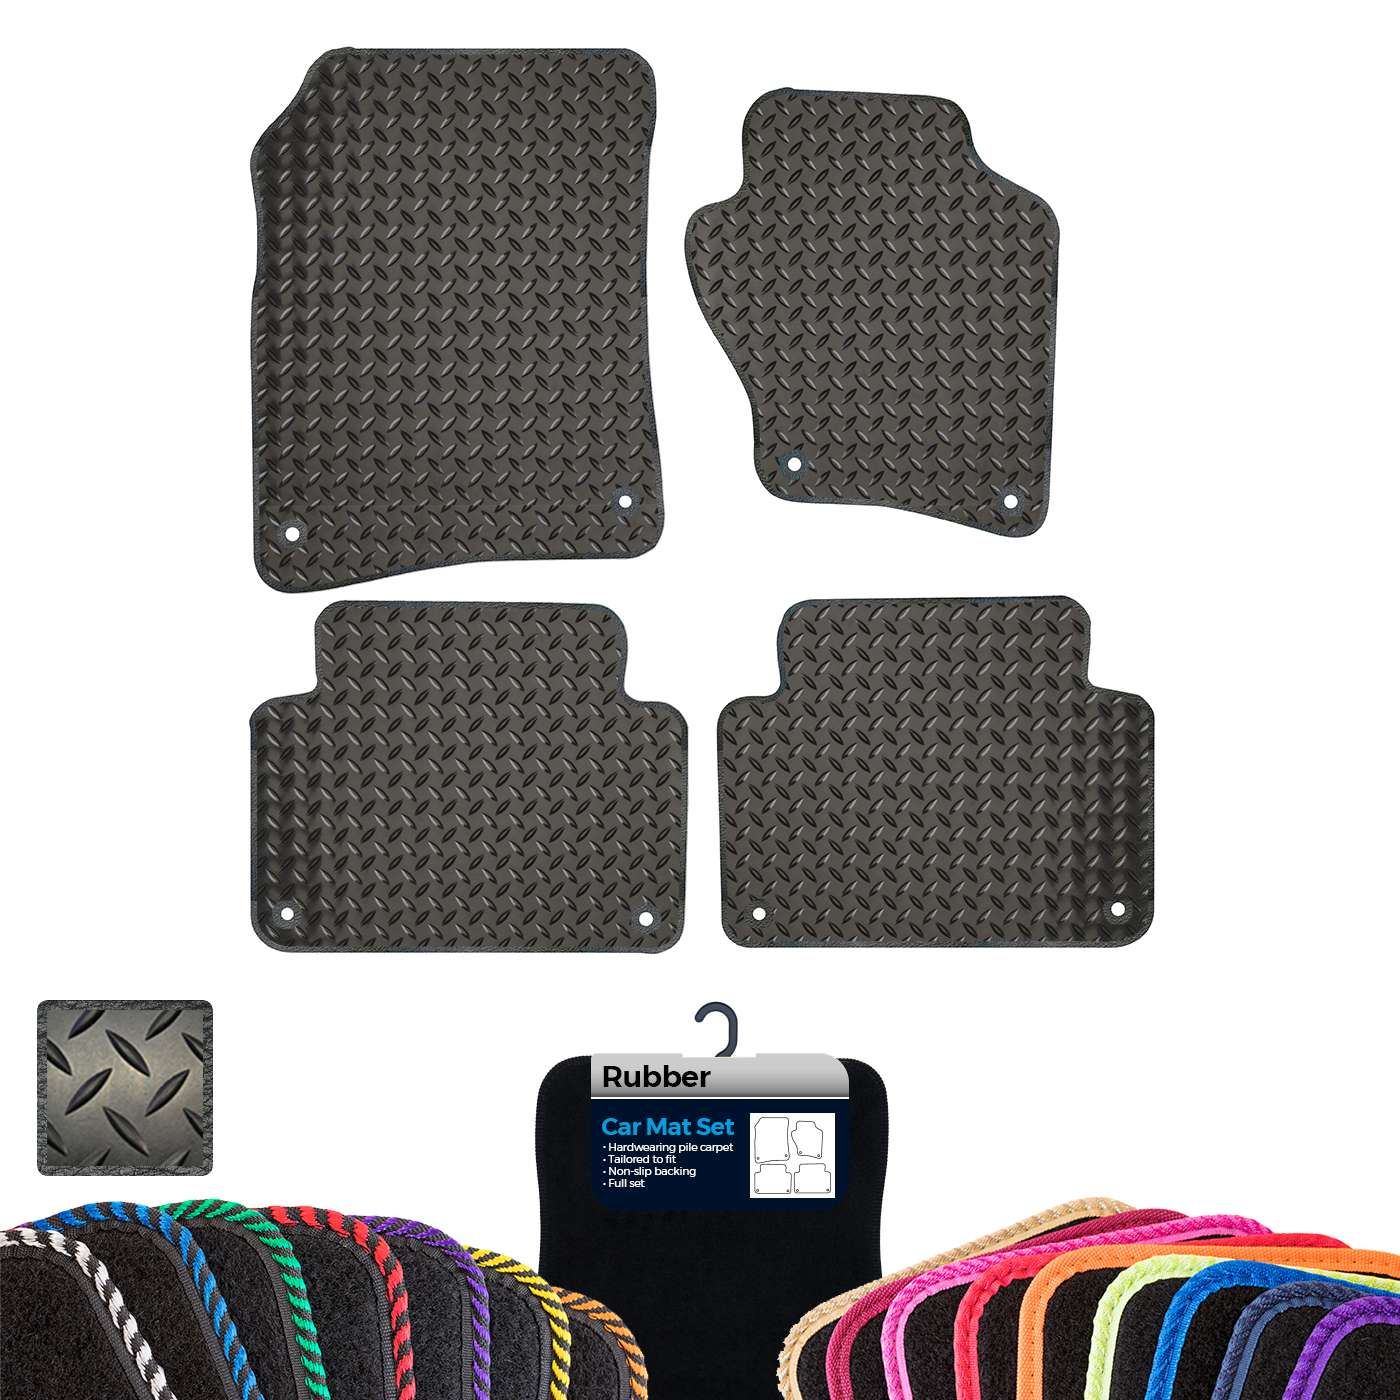 Audi Q7 2006 To 2015 New Tailored Black Rubber Car Floor Mats